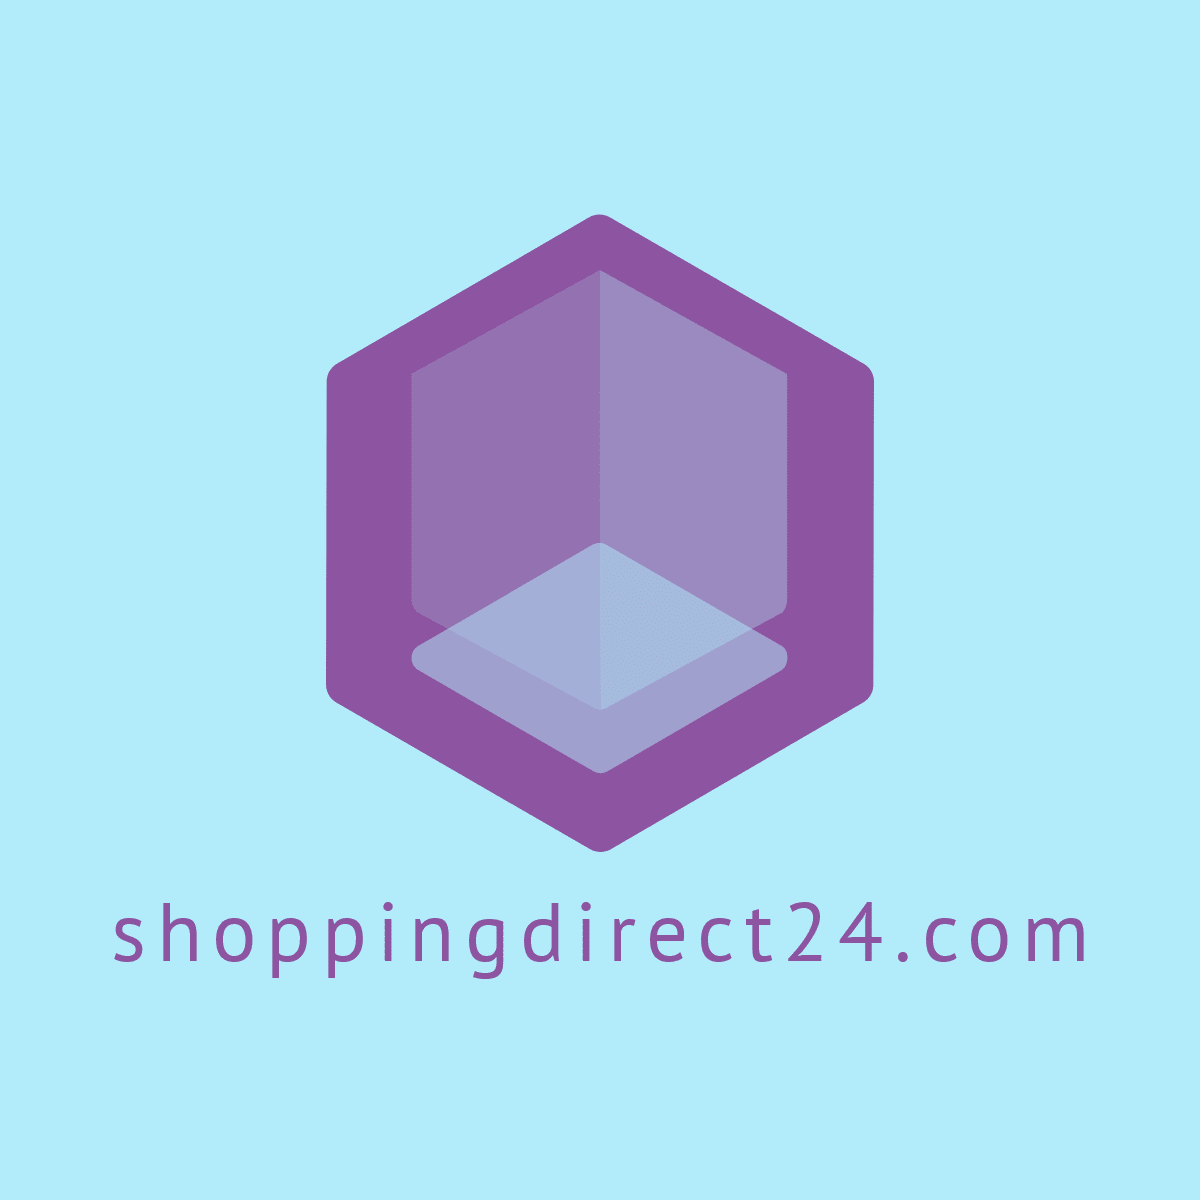 Shoppingdirect24.com Coupons and Promo Code